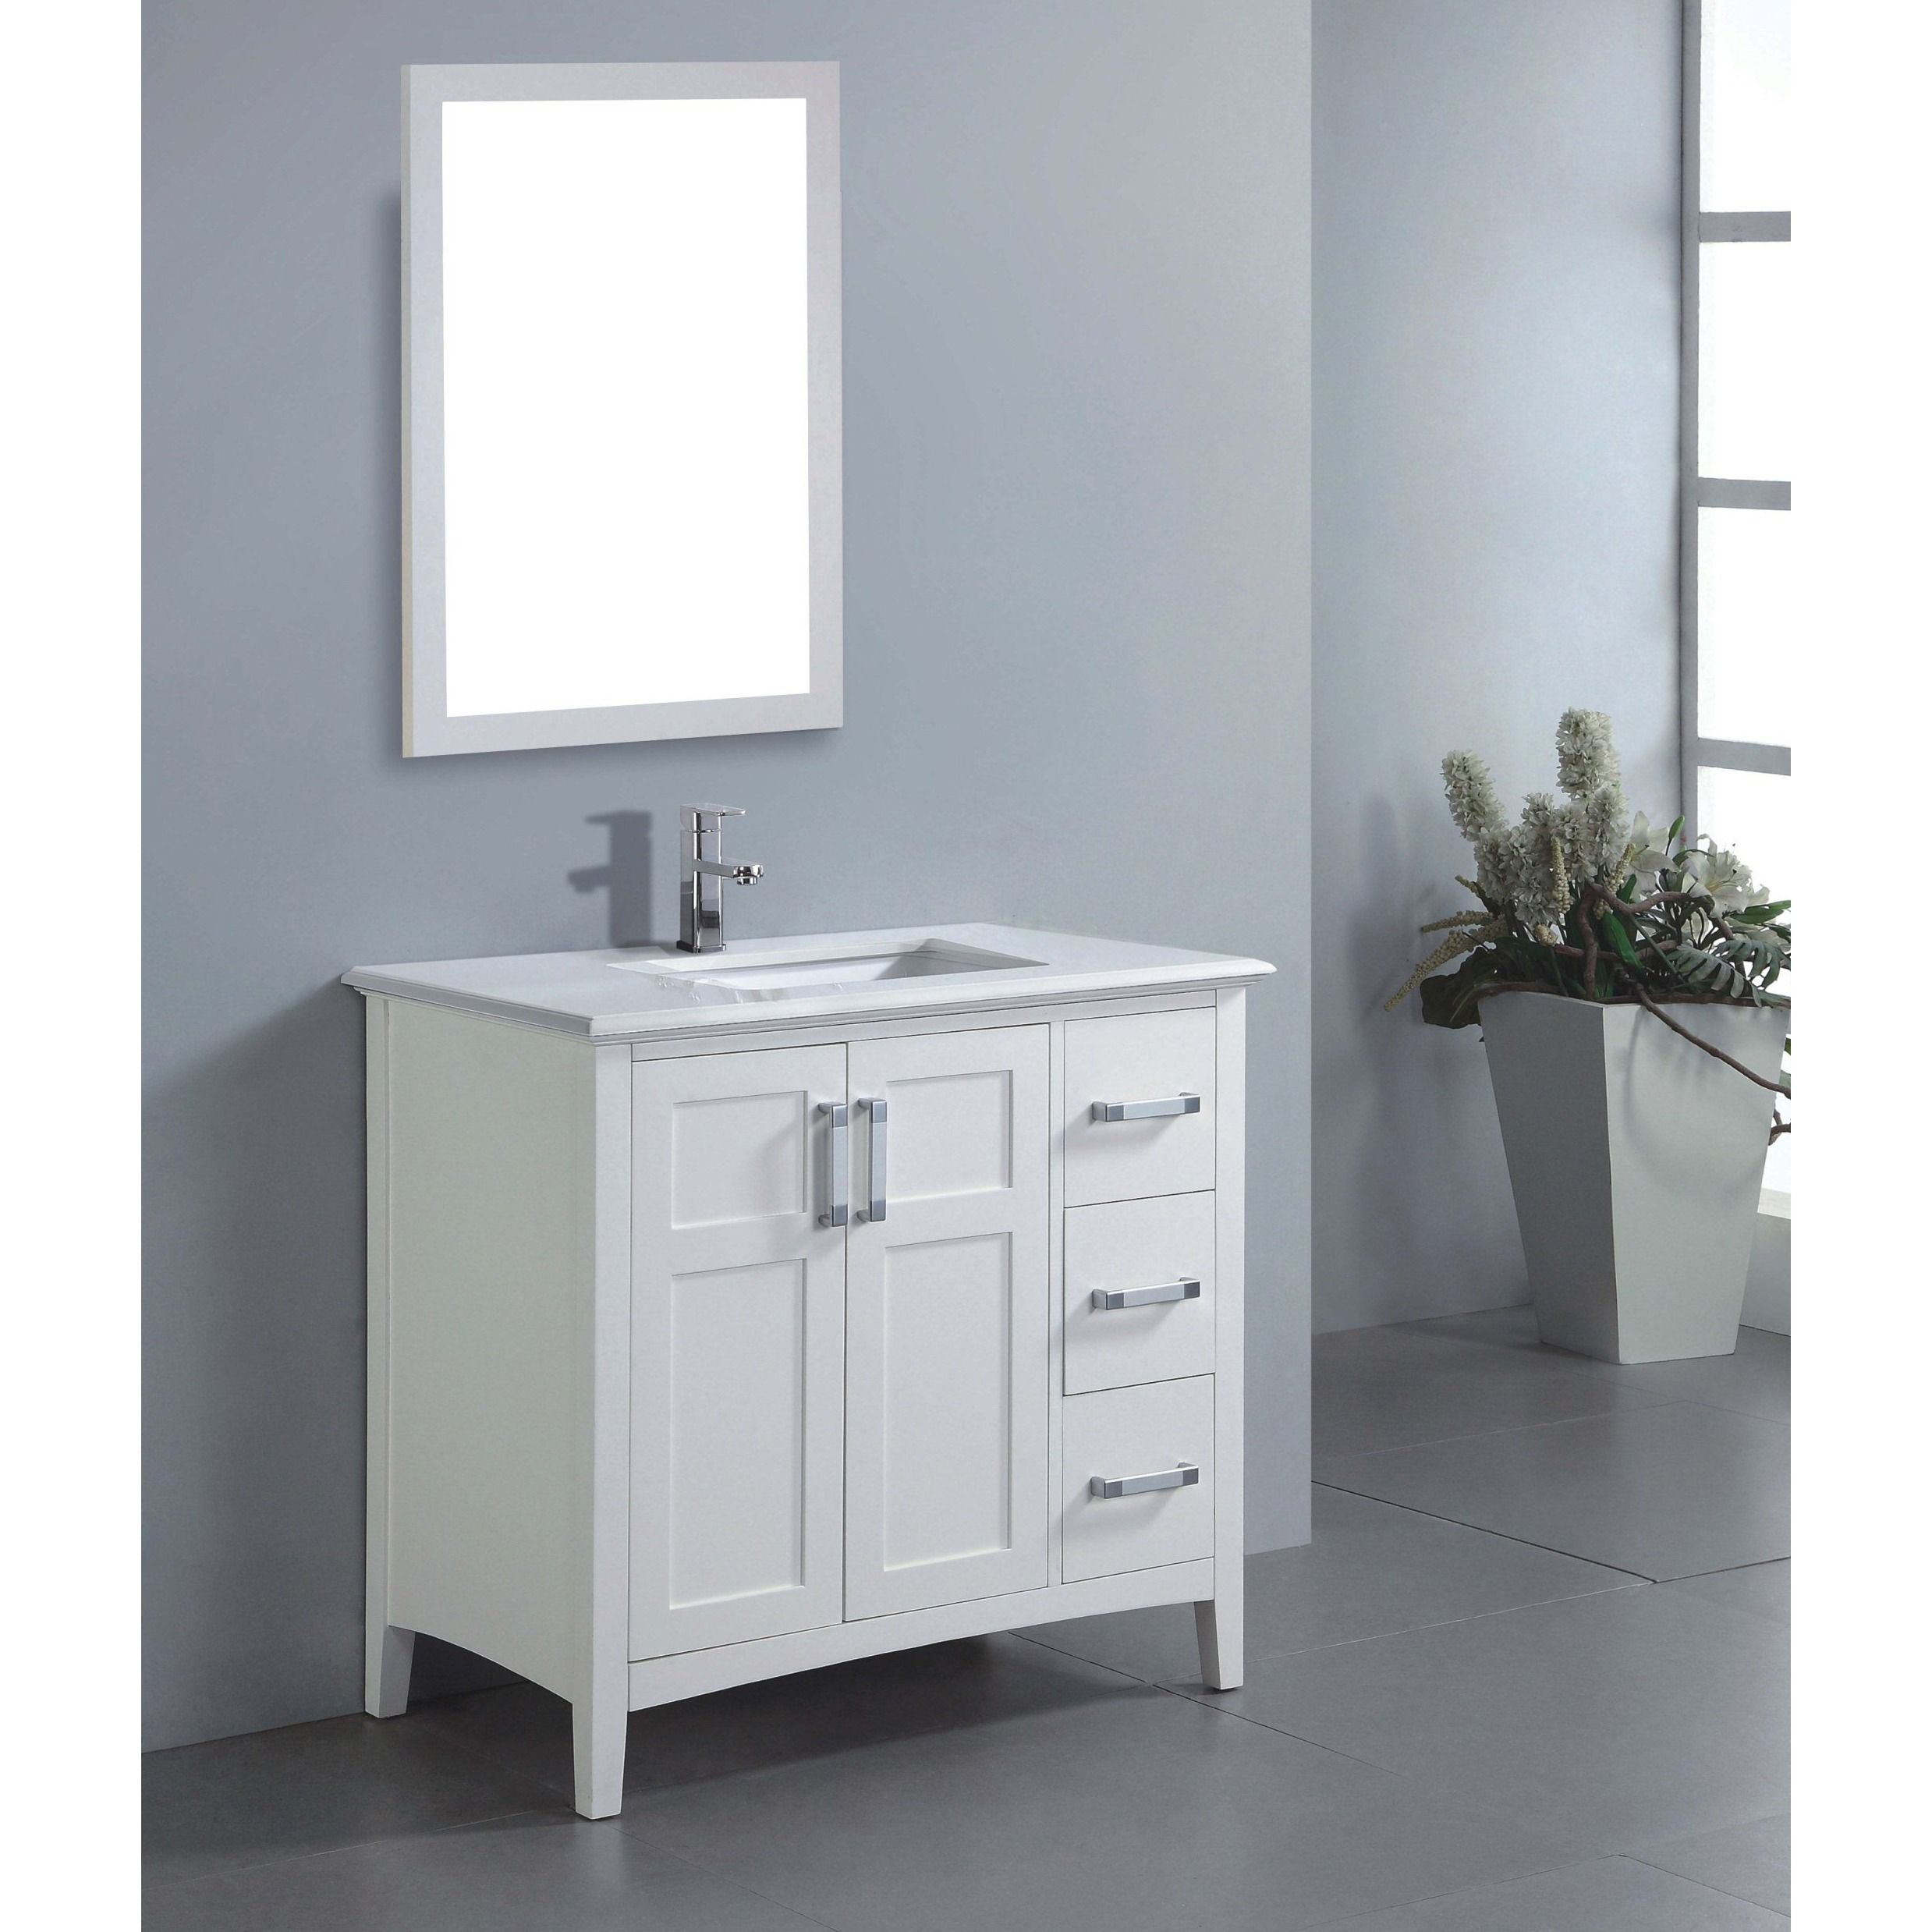 wyndenhall salem 36-inch white quartz marble top single sink